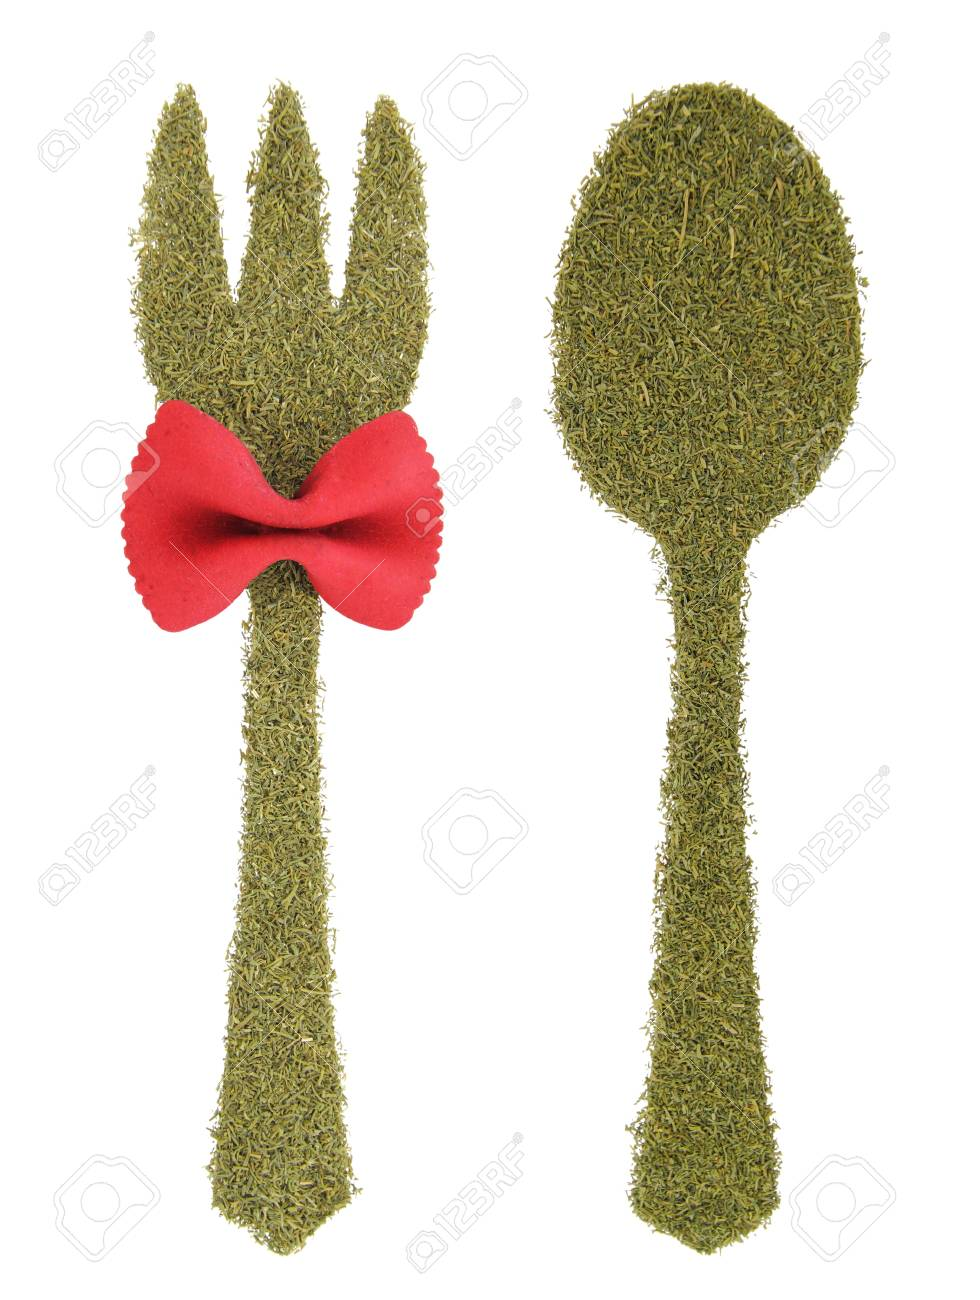 Spoon and fork made of dill Stock Photo - 15210129